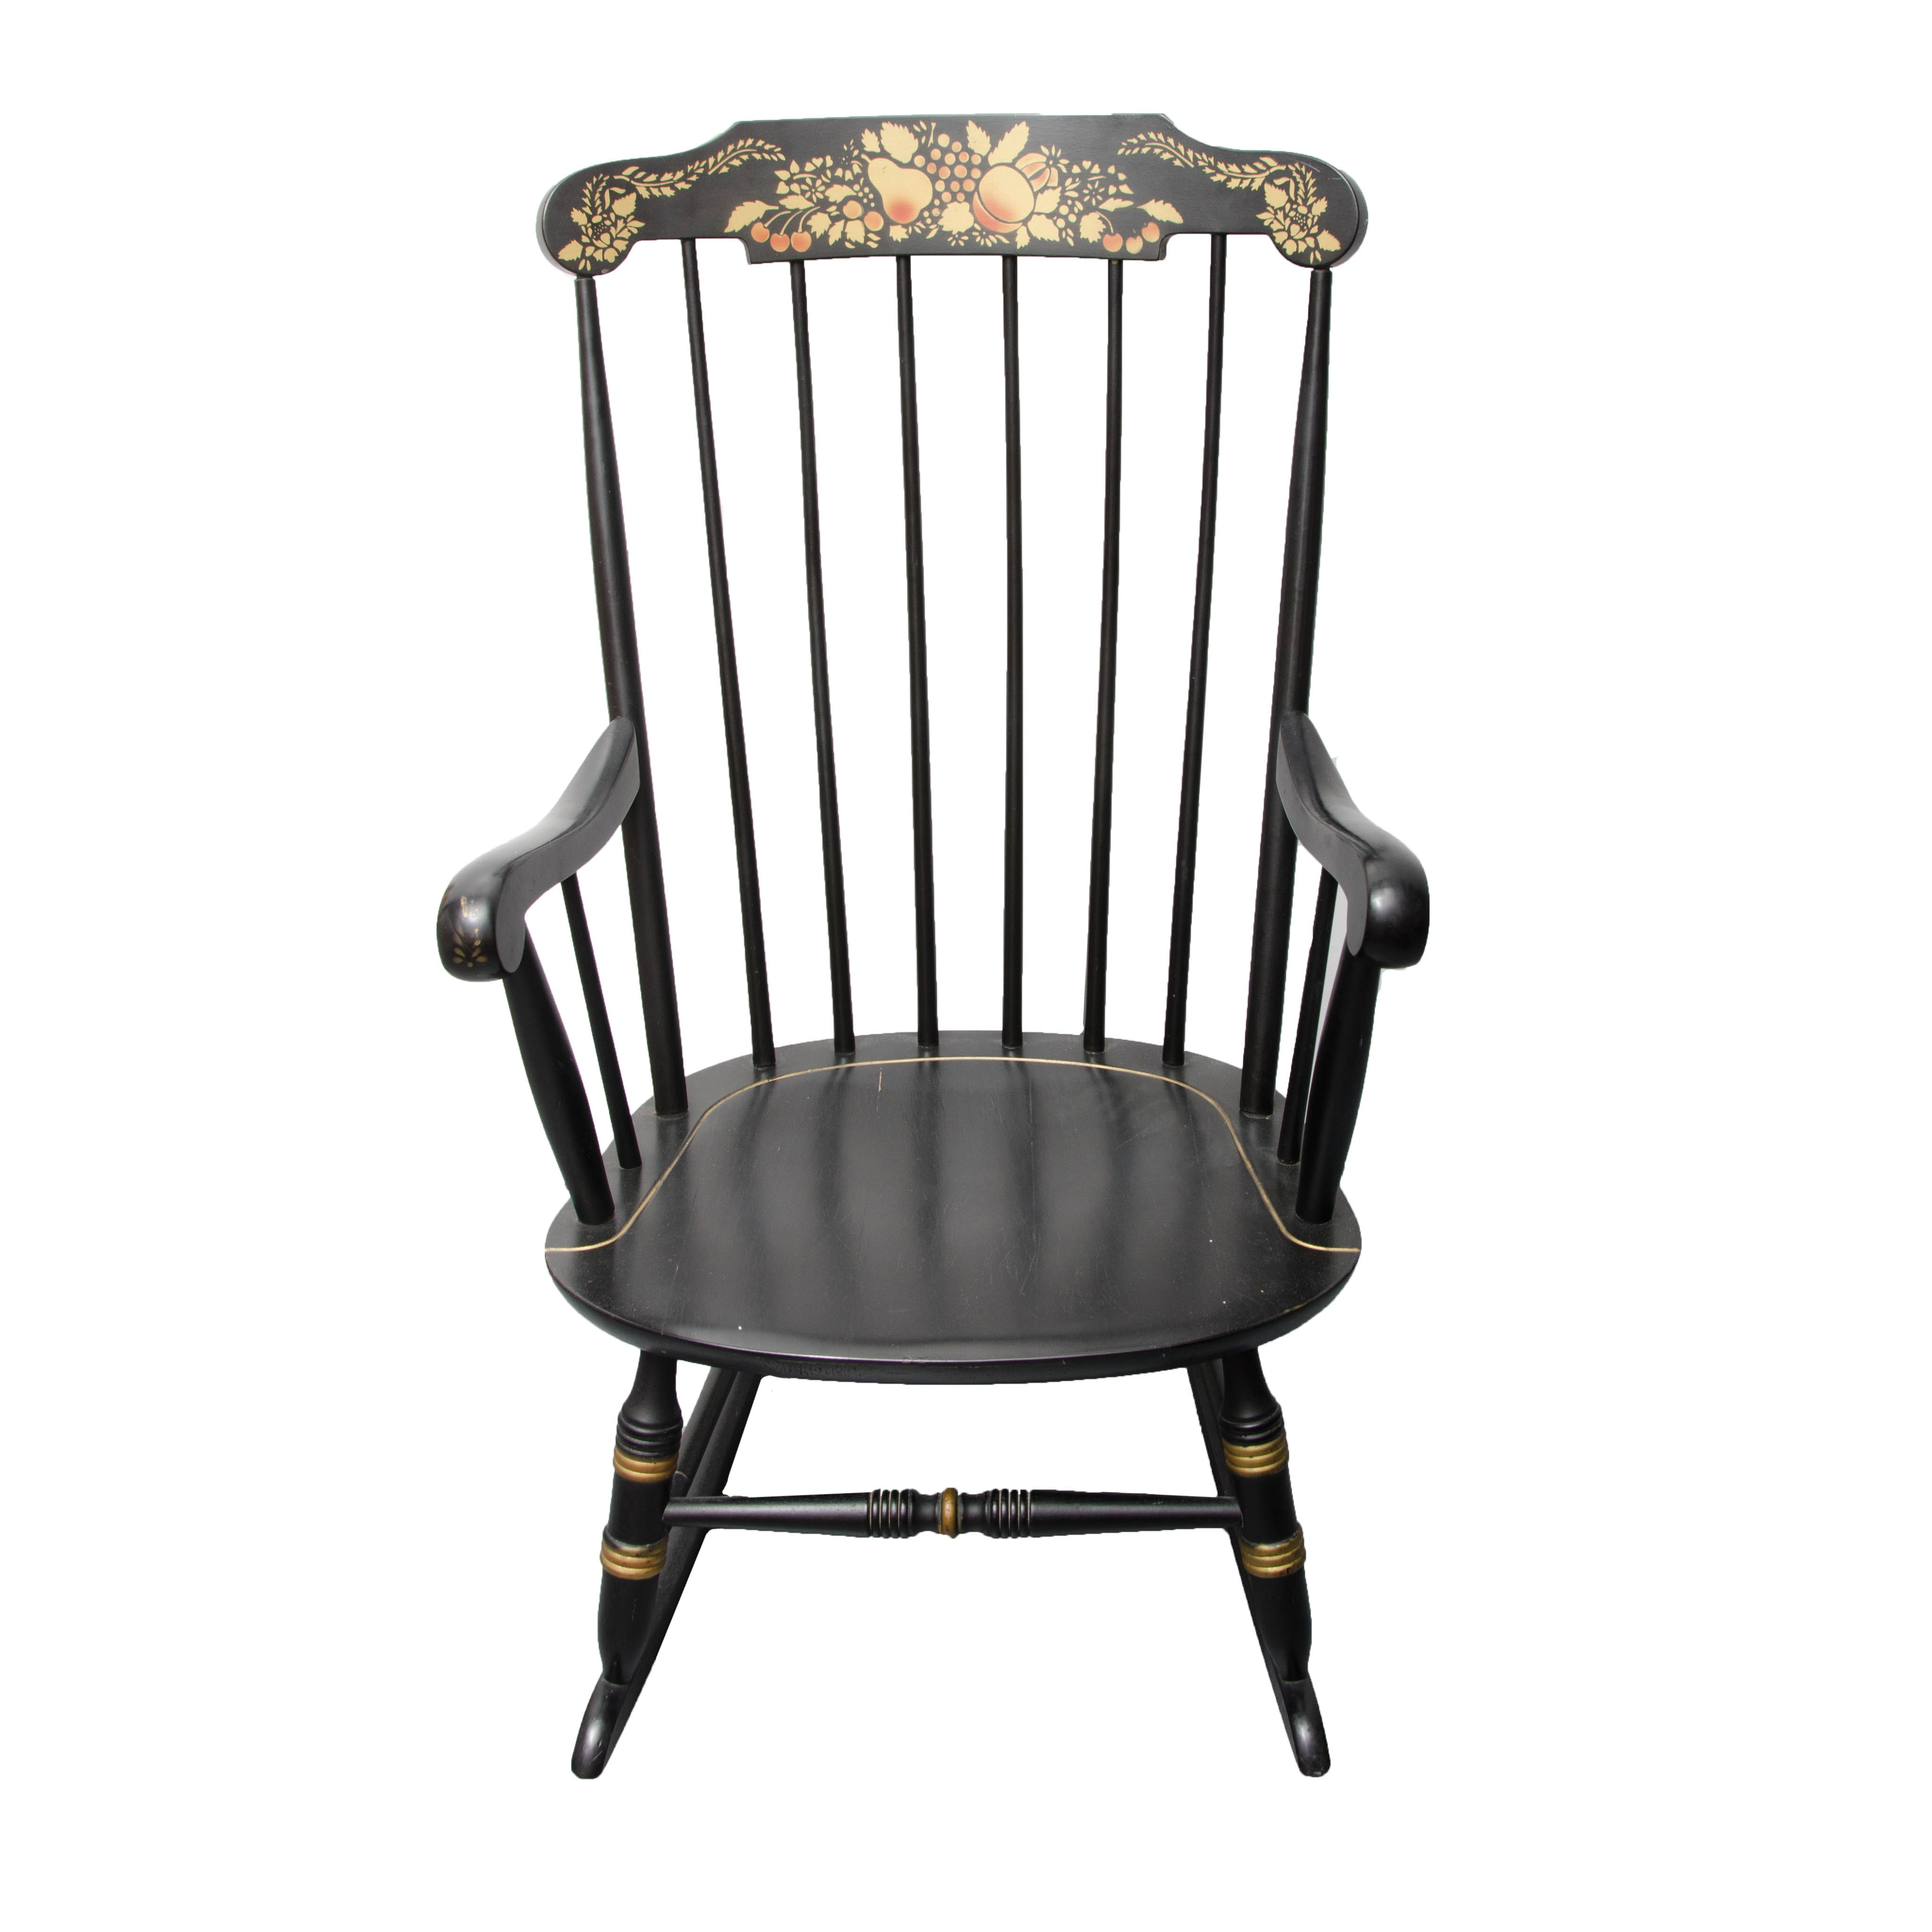 Hitchcock Style Rocking Chair